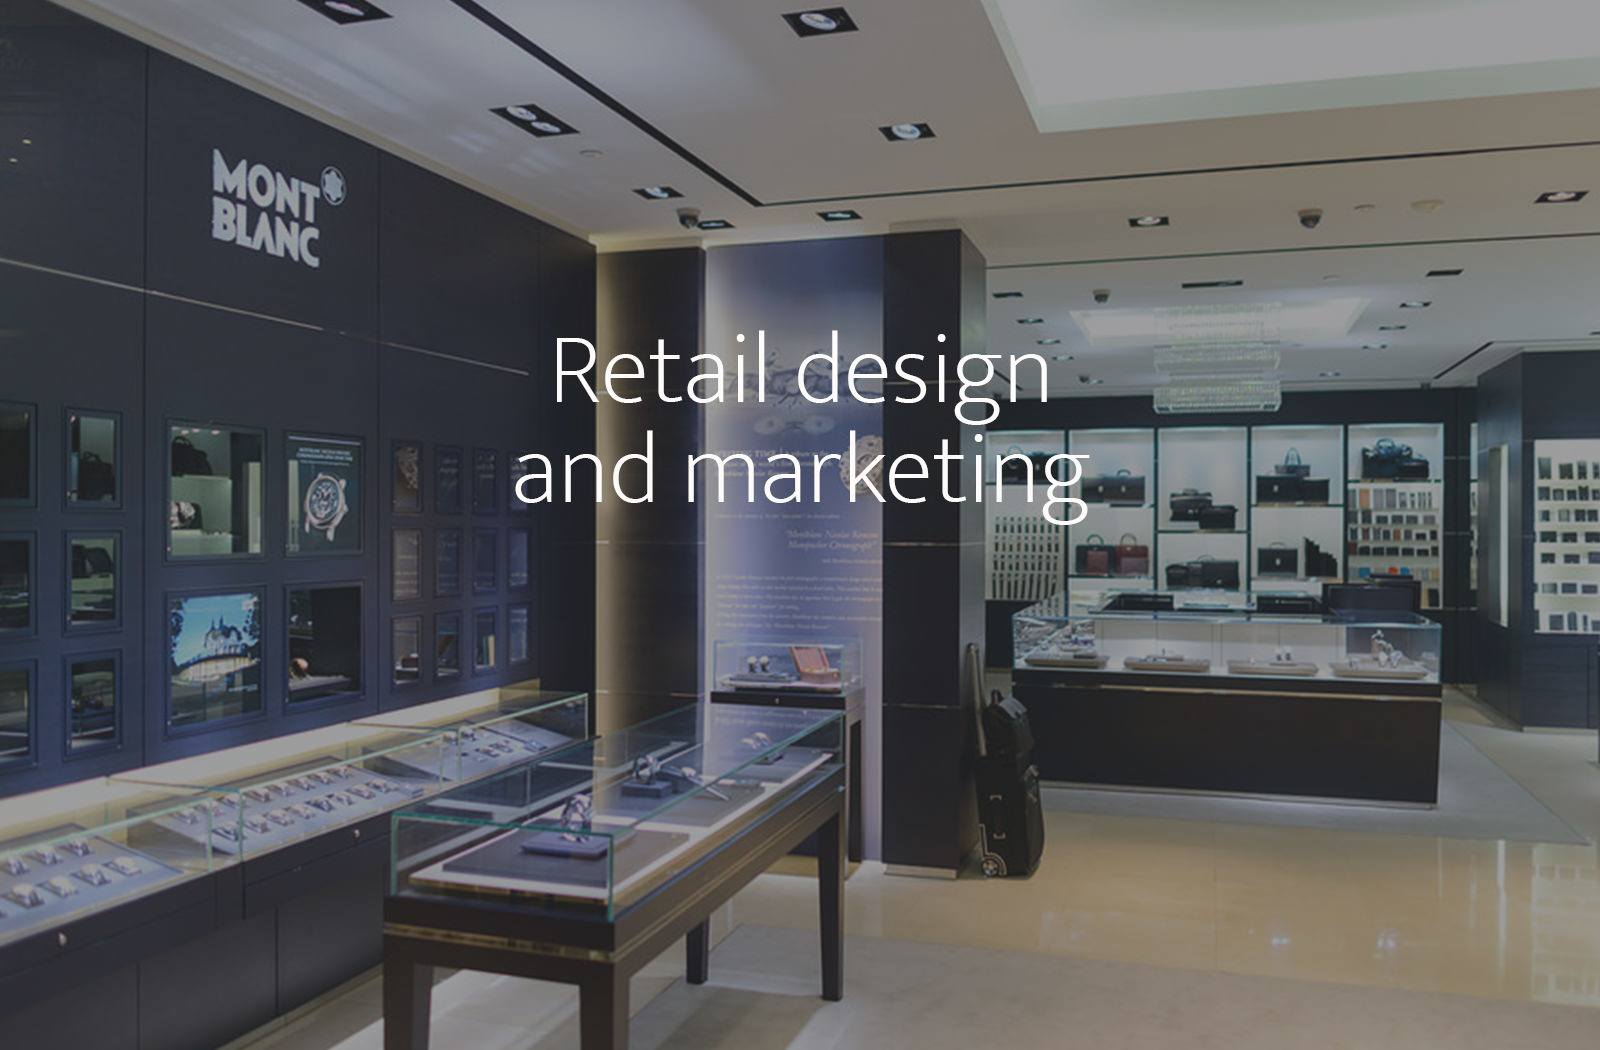 Recruitment, assessment and development for Retail design and marketing